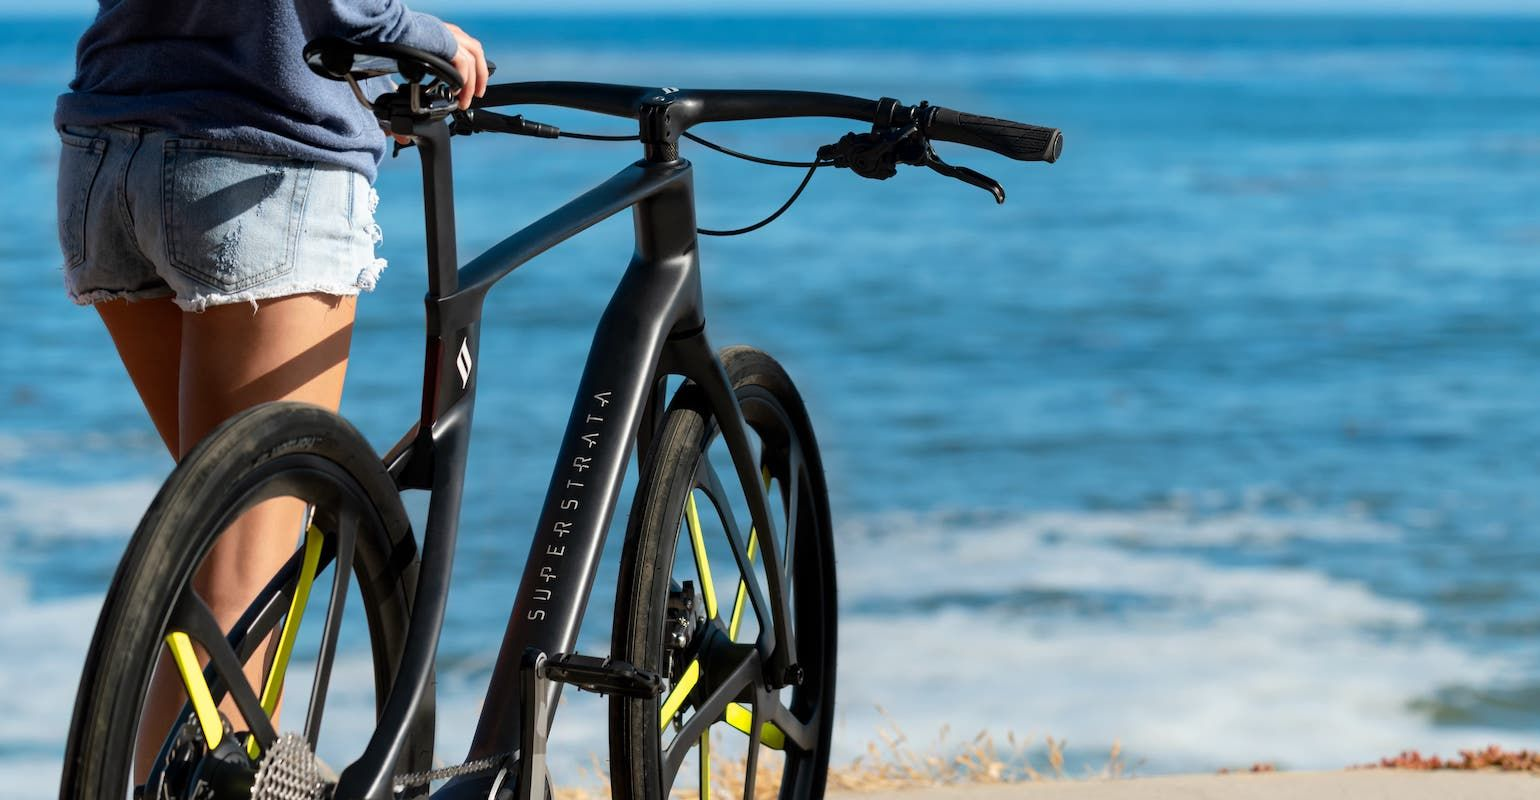 AREVO has used its Aqua 2 3D printer to produce 3D printer to produce unified composite bike frames with start-up Superstrata. Photo via Superstrata.